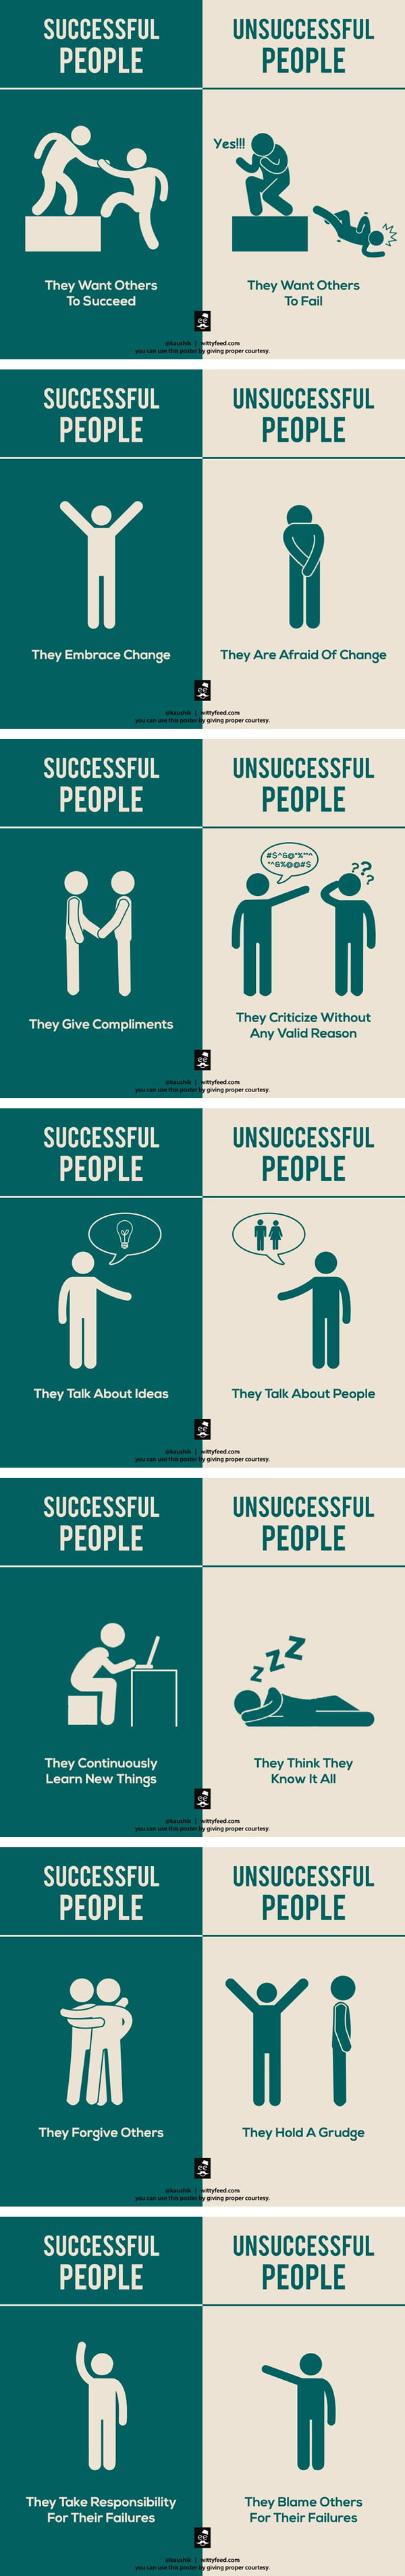 7 Differences Between Successful And Unsuccessful People